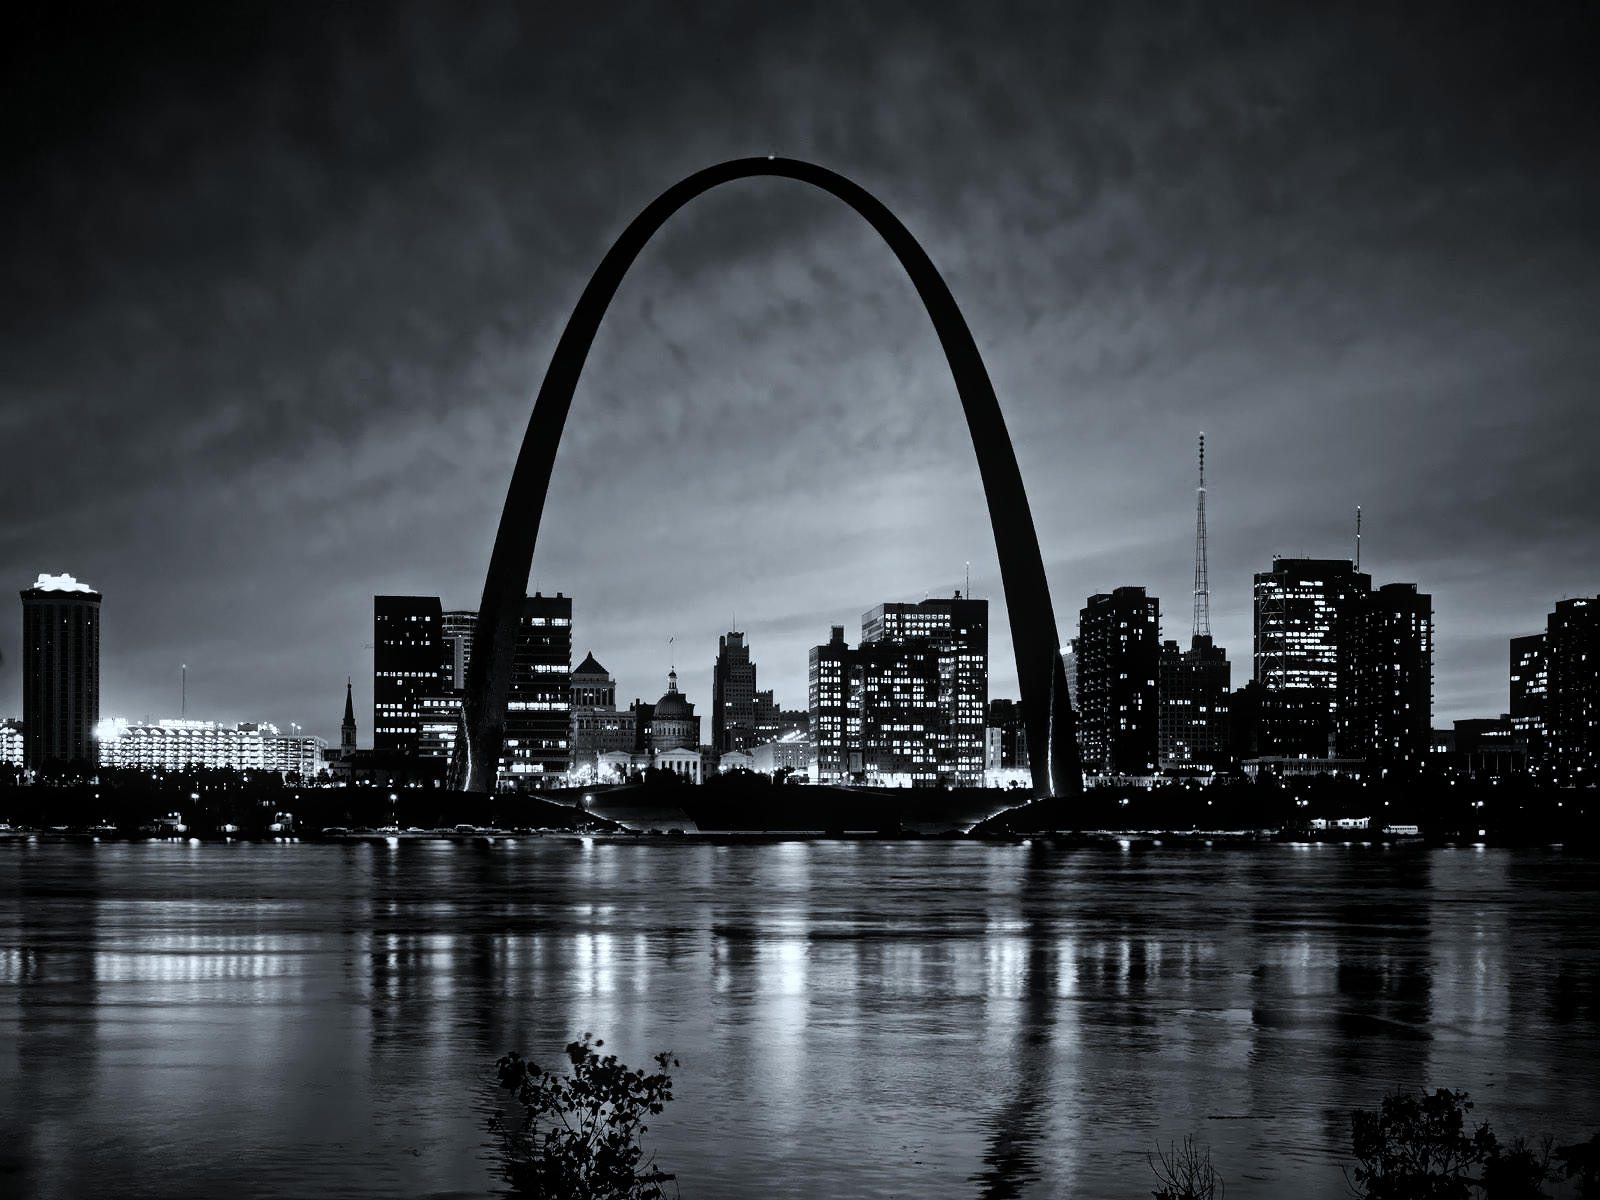 St Louis History In Black And White: Black And White St Louis Wallpaper